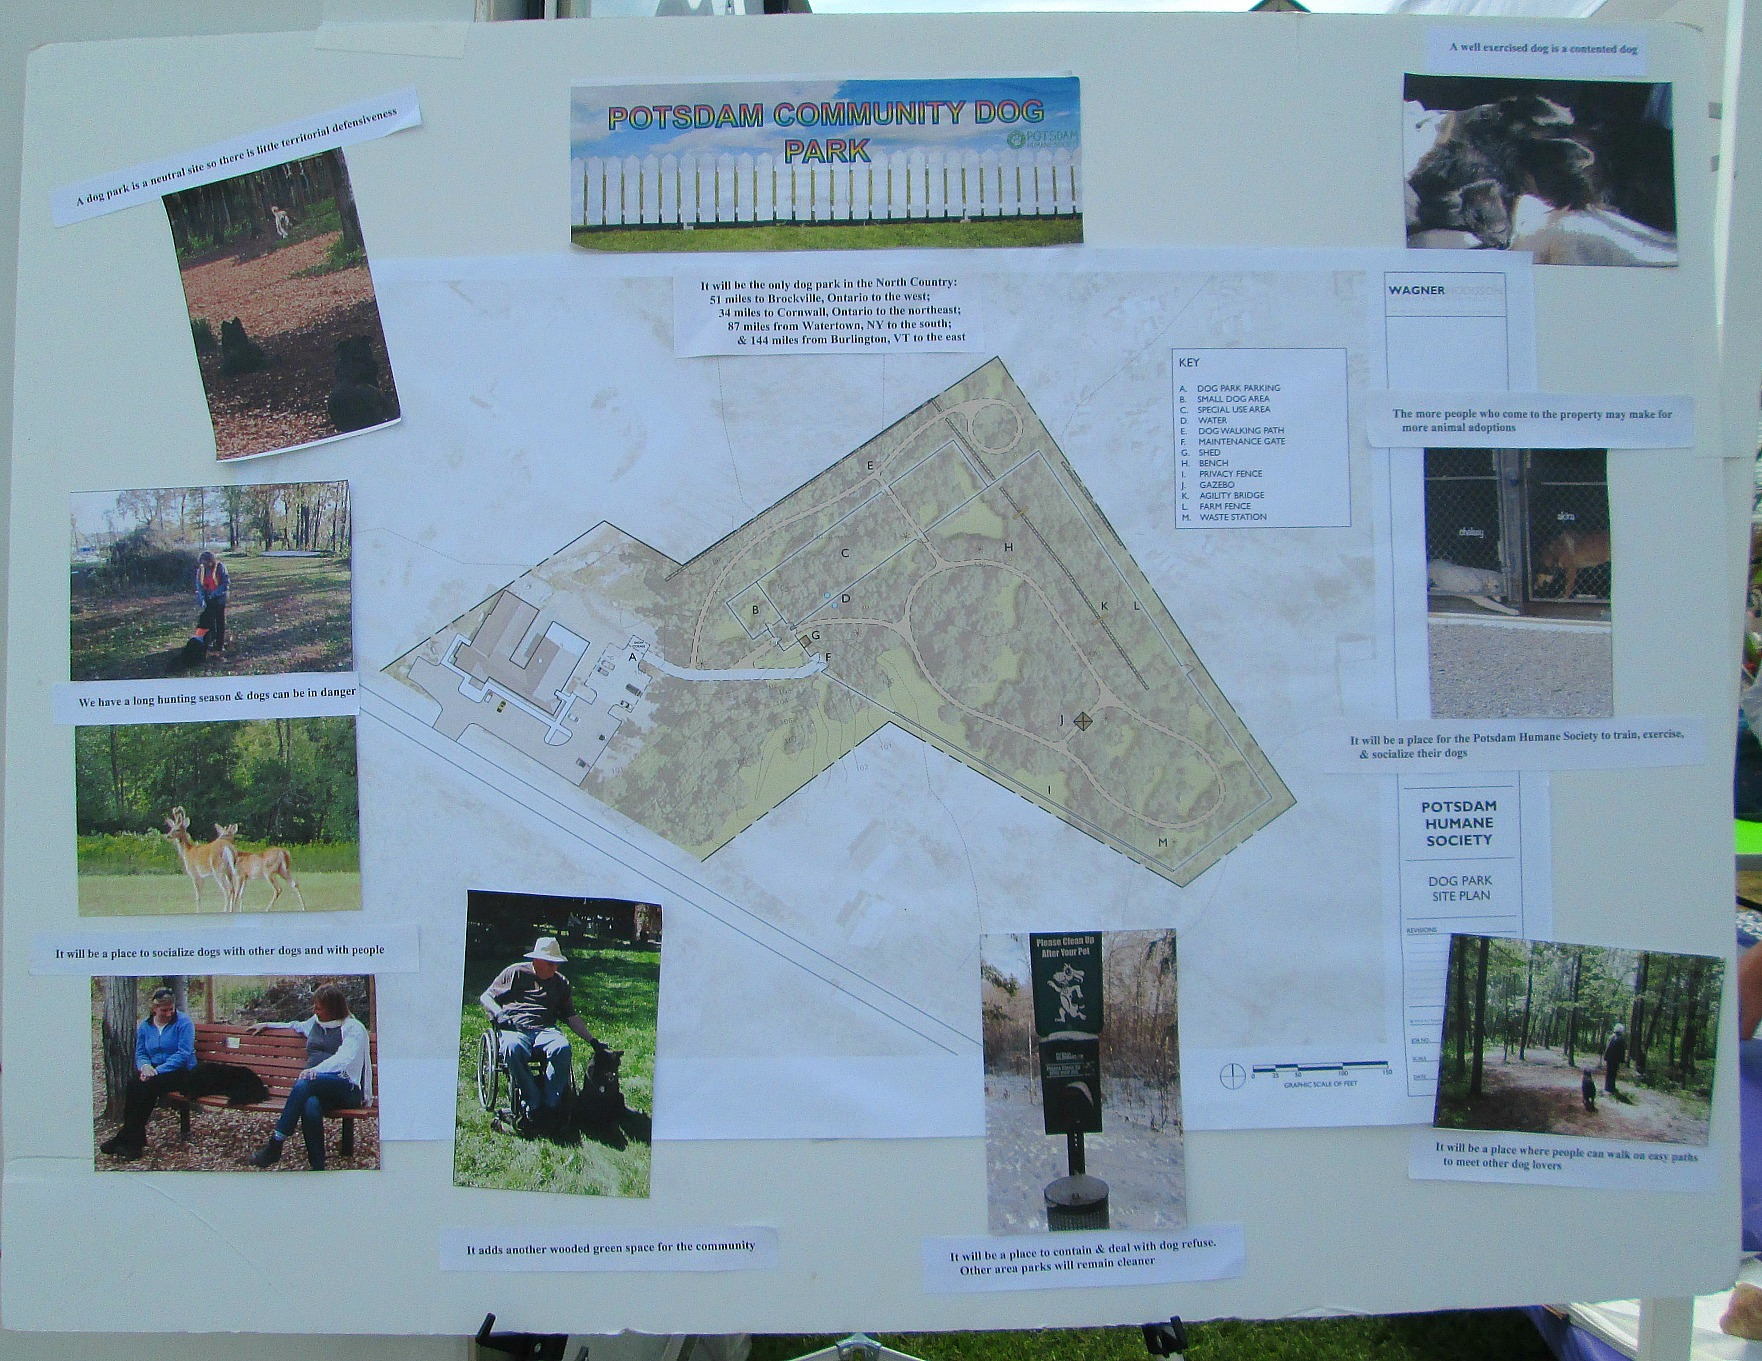 Plans for the Dog Park